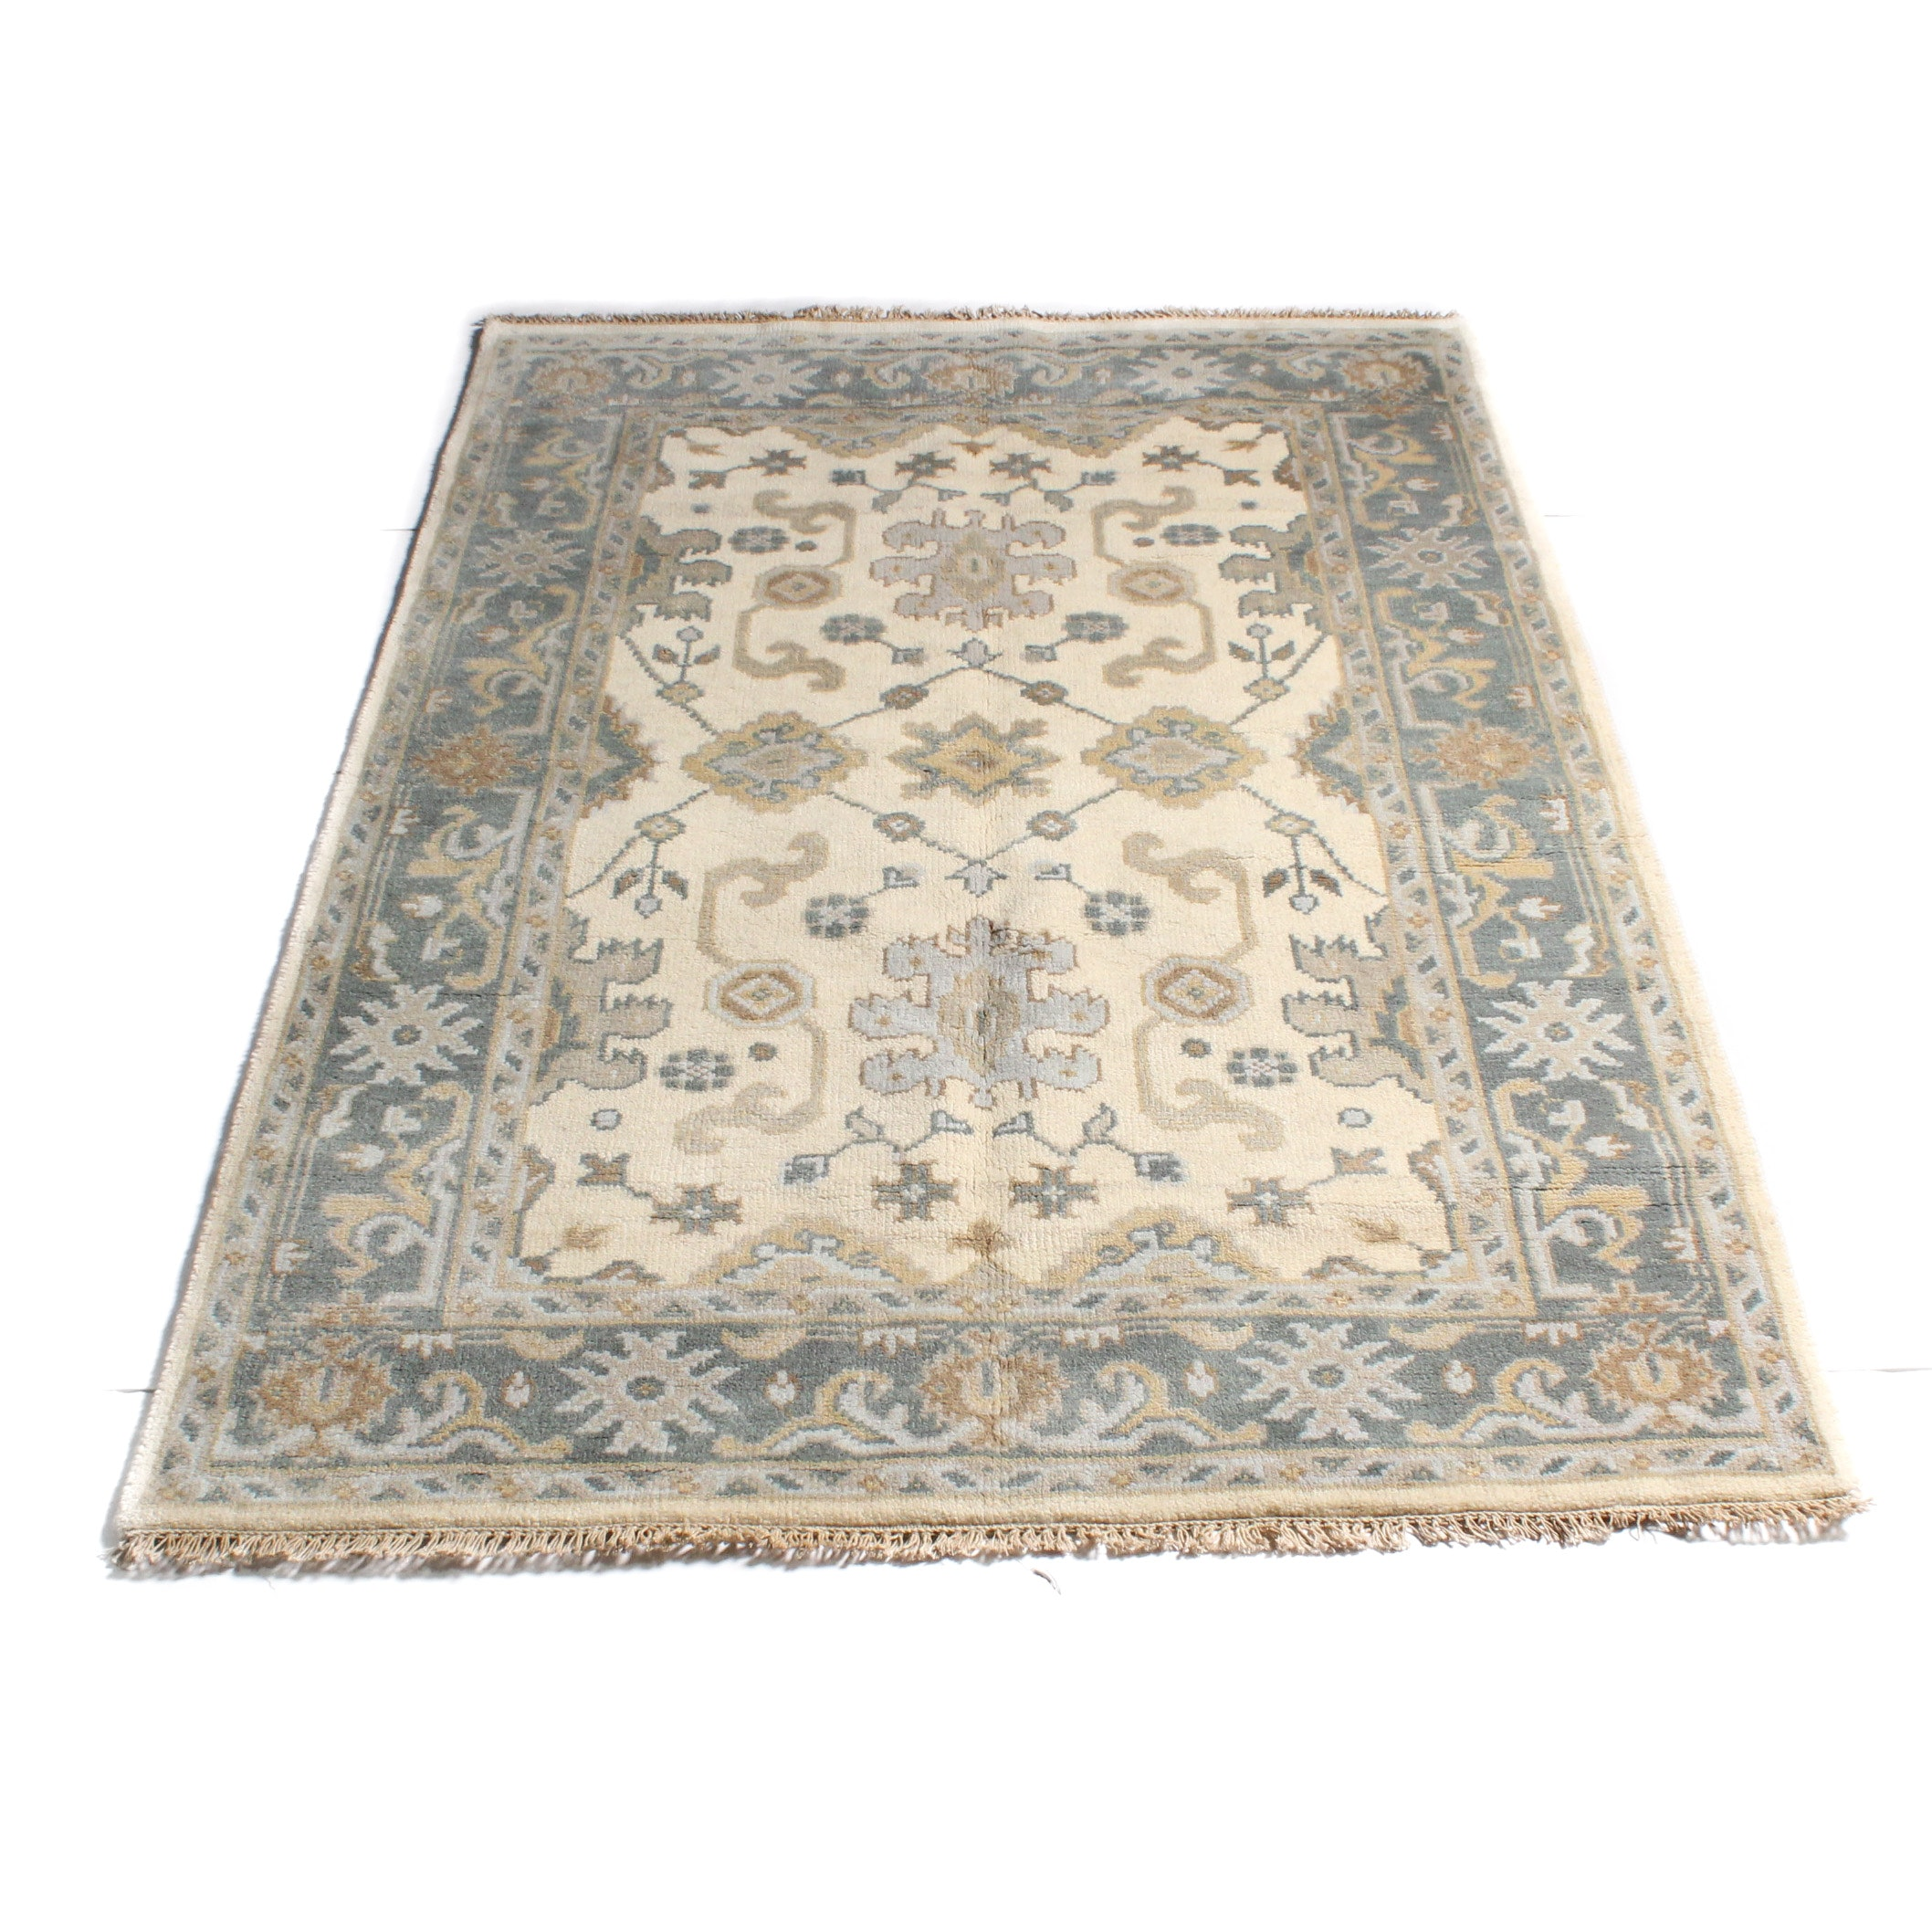 4'0 x 6'0 Hand-Knotted Indo-Turkish Oushak Rug